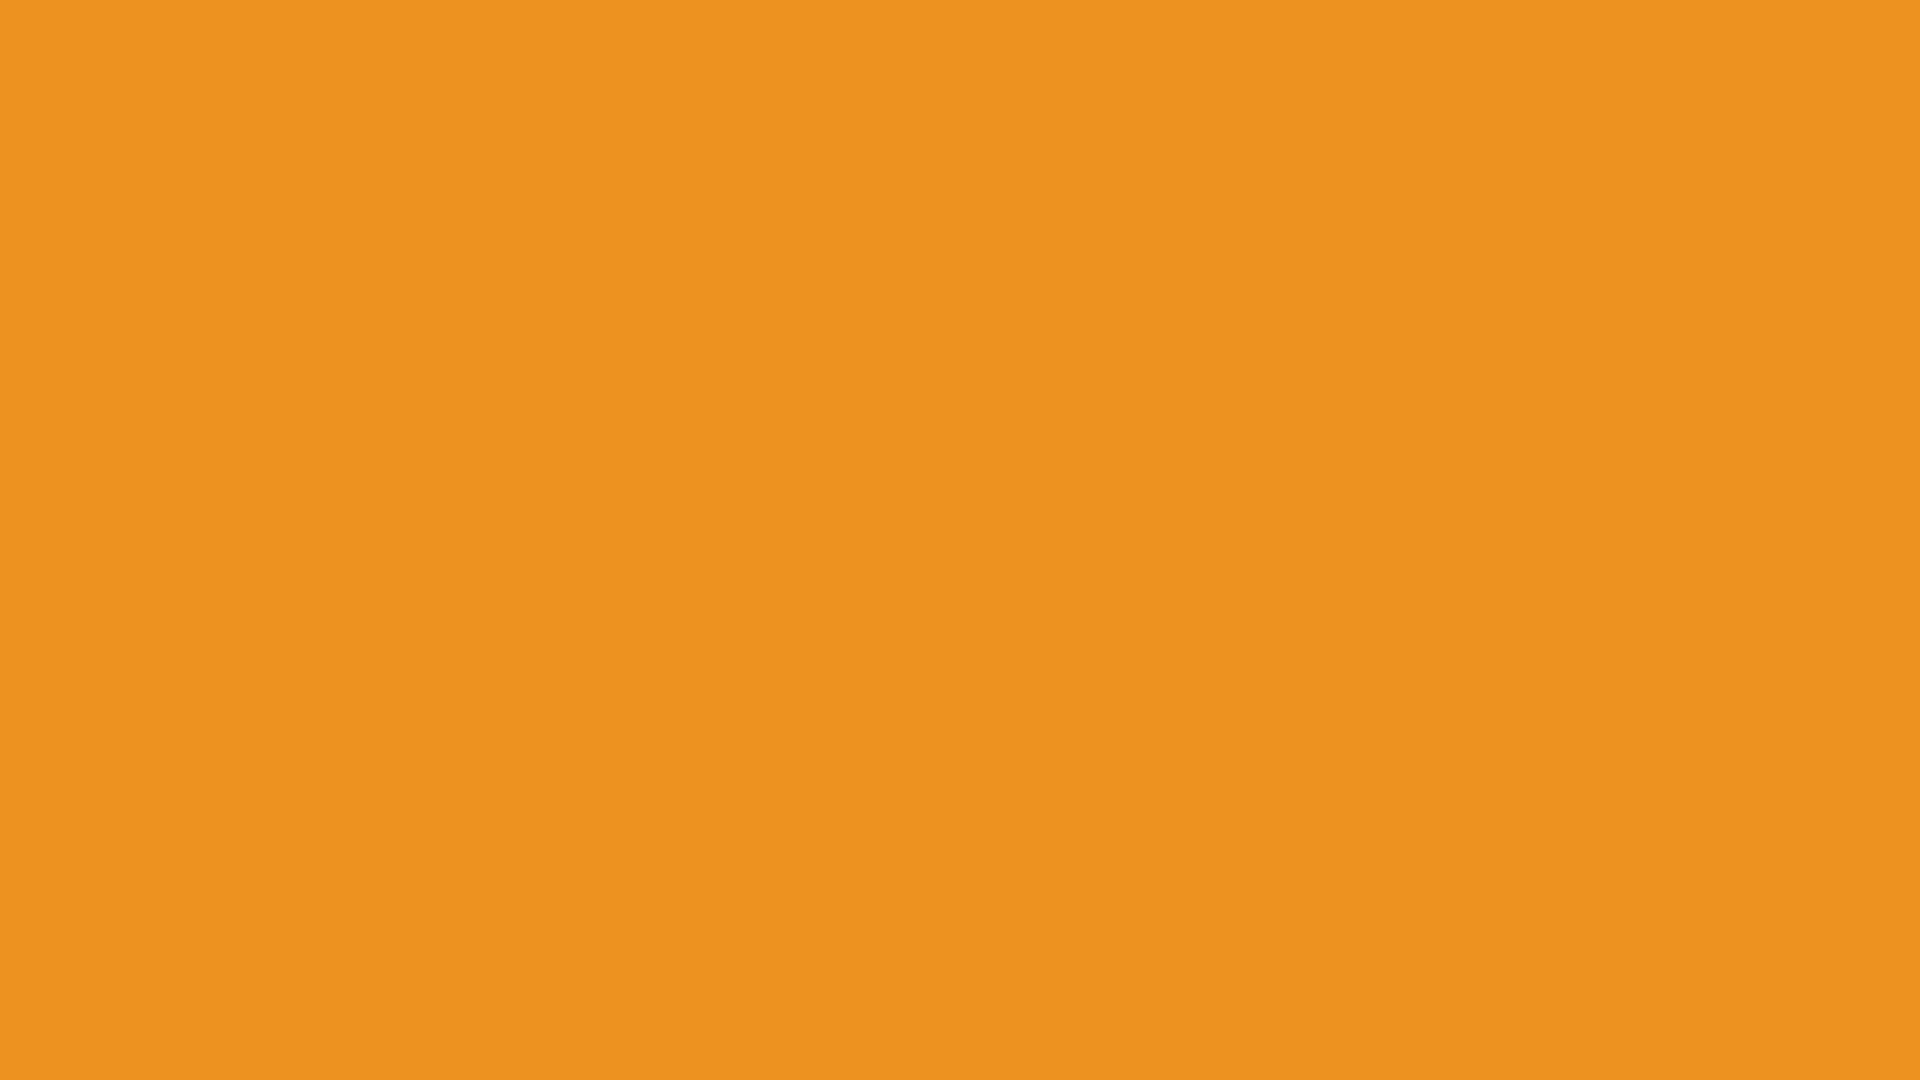 1920x1080 Carrot Orange Solid Color Background